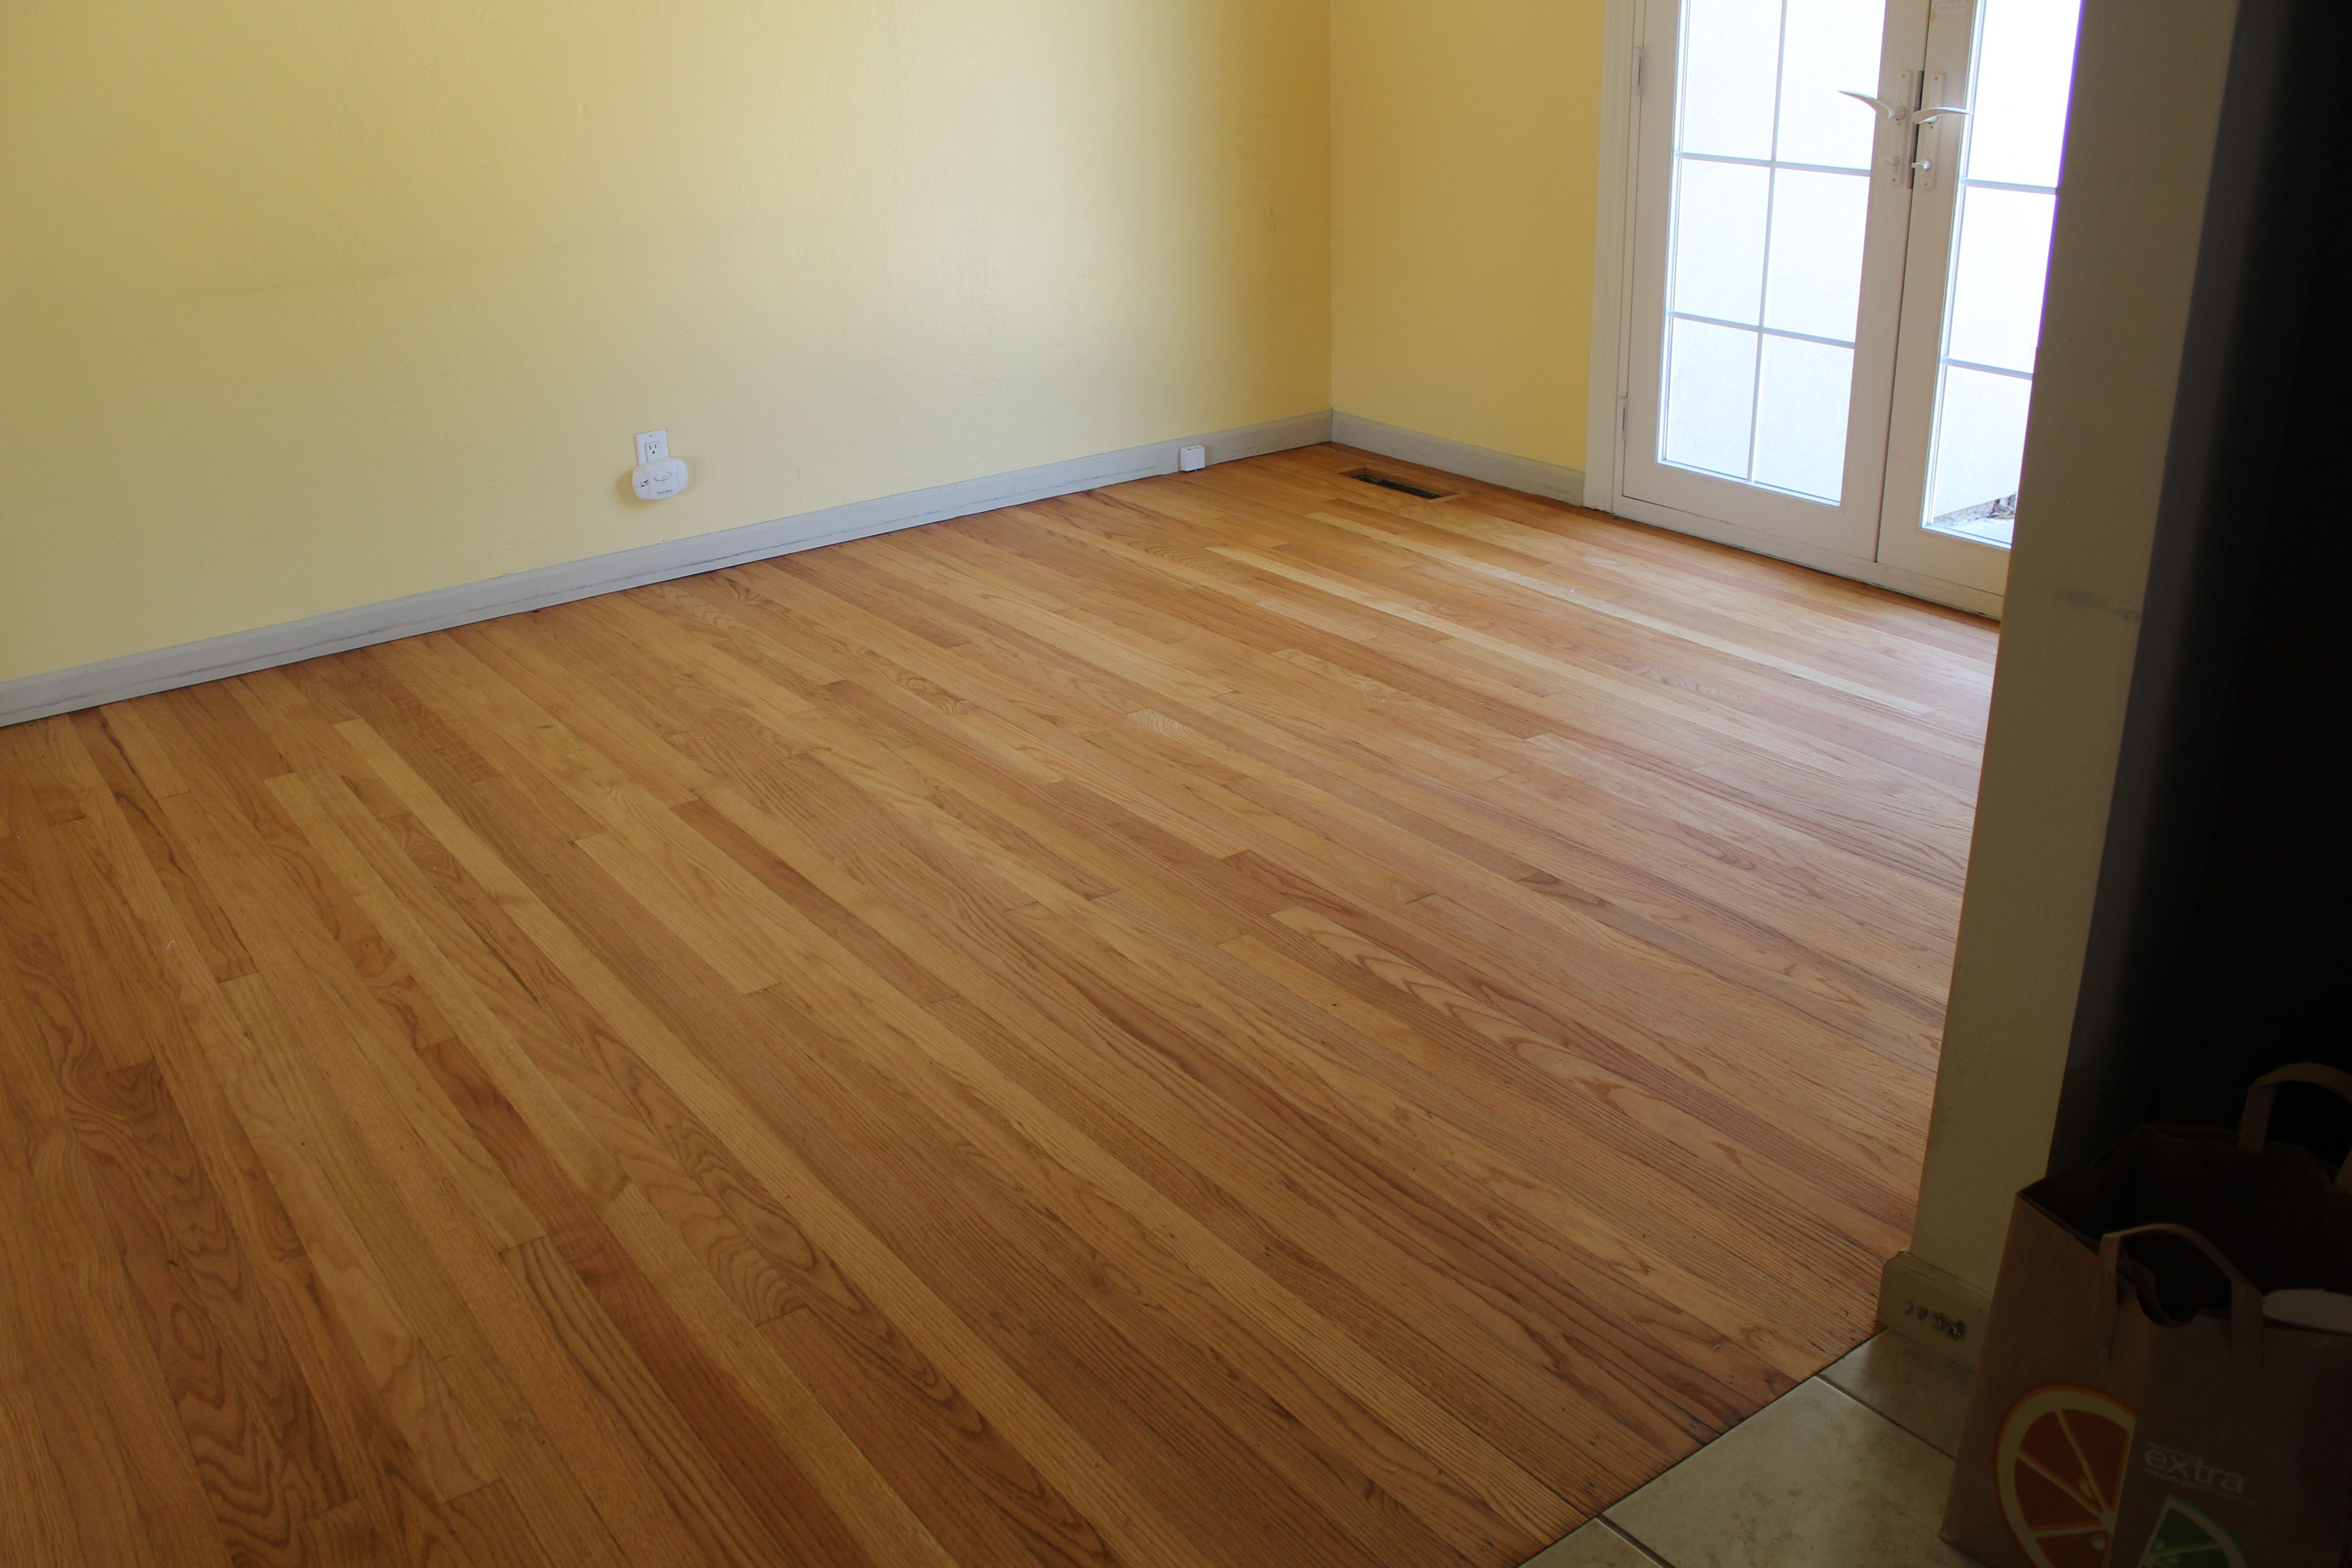 This Is A Picture Of Rubio Monocoat Zero Voc Floor Finish On A Select Red Oak Floor In Sacramento California Red Oak Floors Oak Floors Red Oak